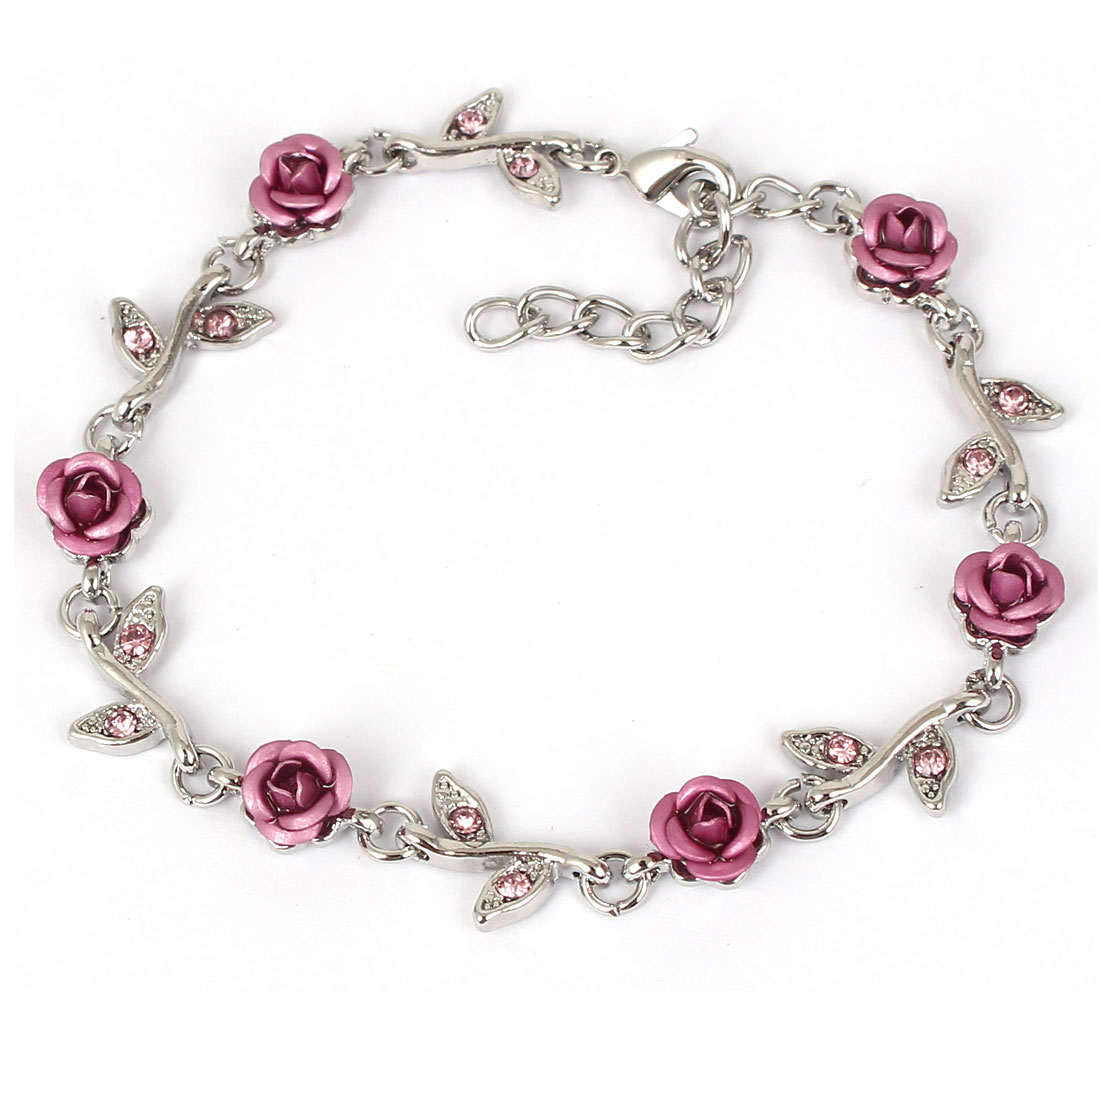 Fashion Jewelry Rose Flower Crystal Decor Alloy Chain Bracelet Silver Tone Pink